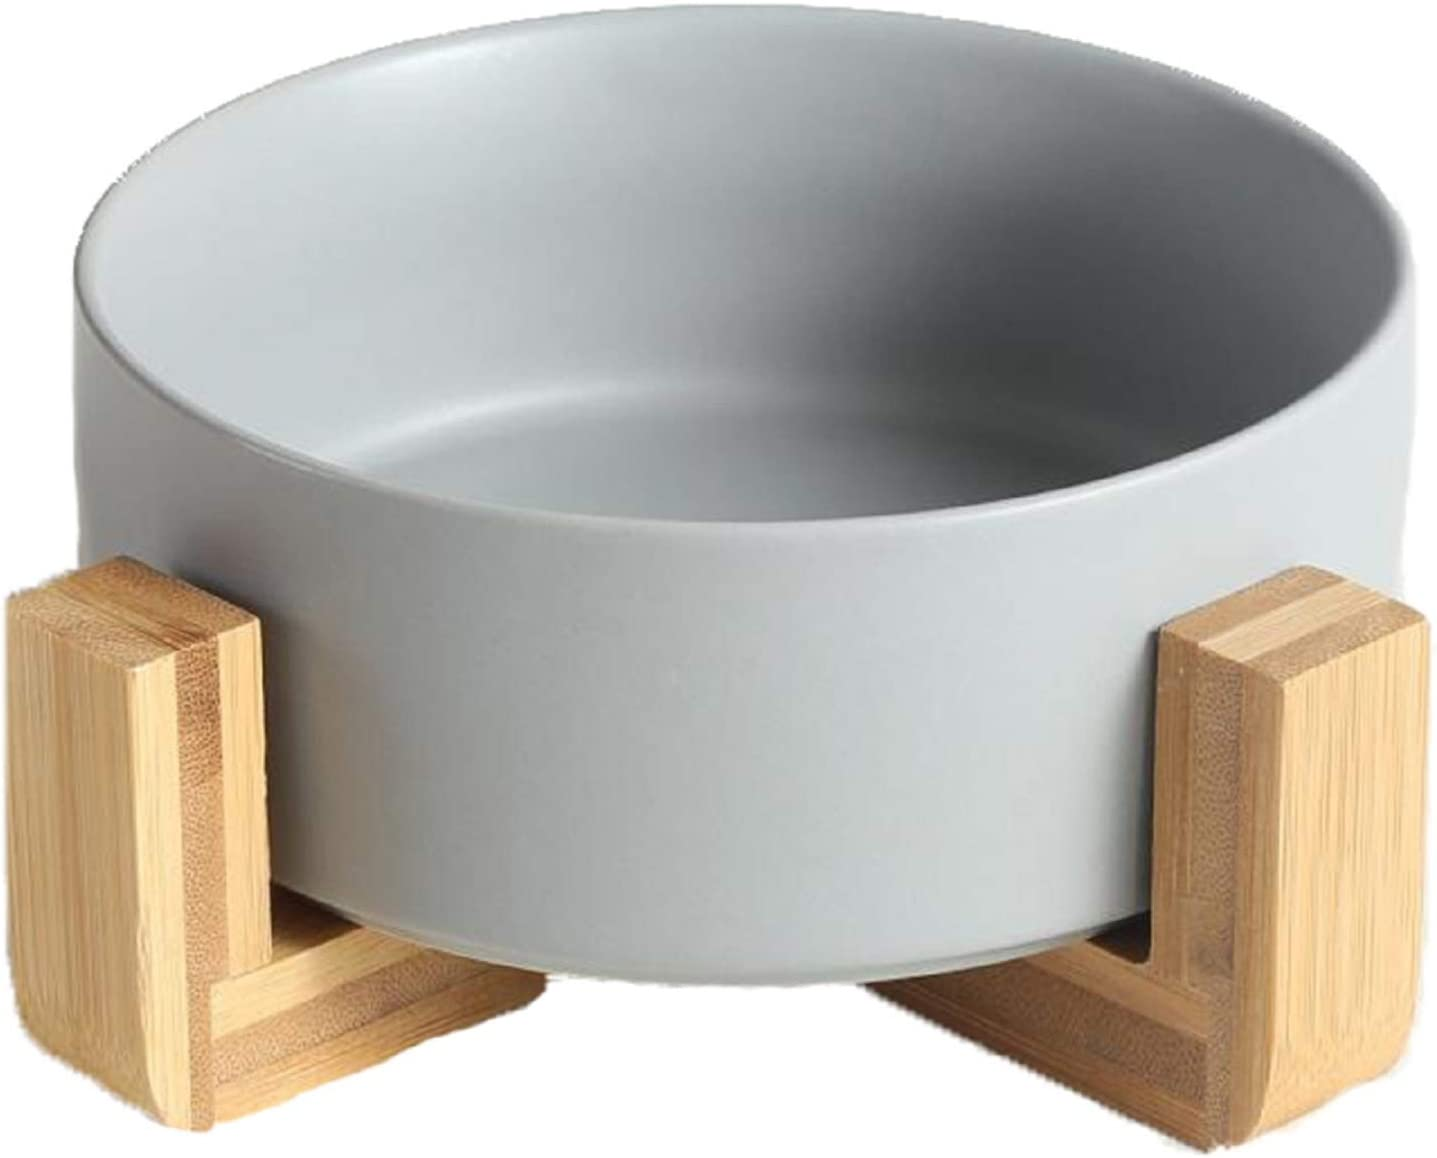 QFULL Ceramic Round Dog Cat Bowl - Durable Ceramic Food Water Elevated Dish for Pet,with Wood Stand,28 Ounces